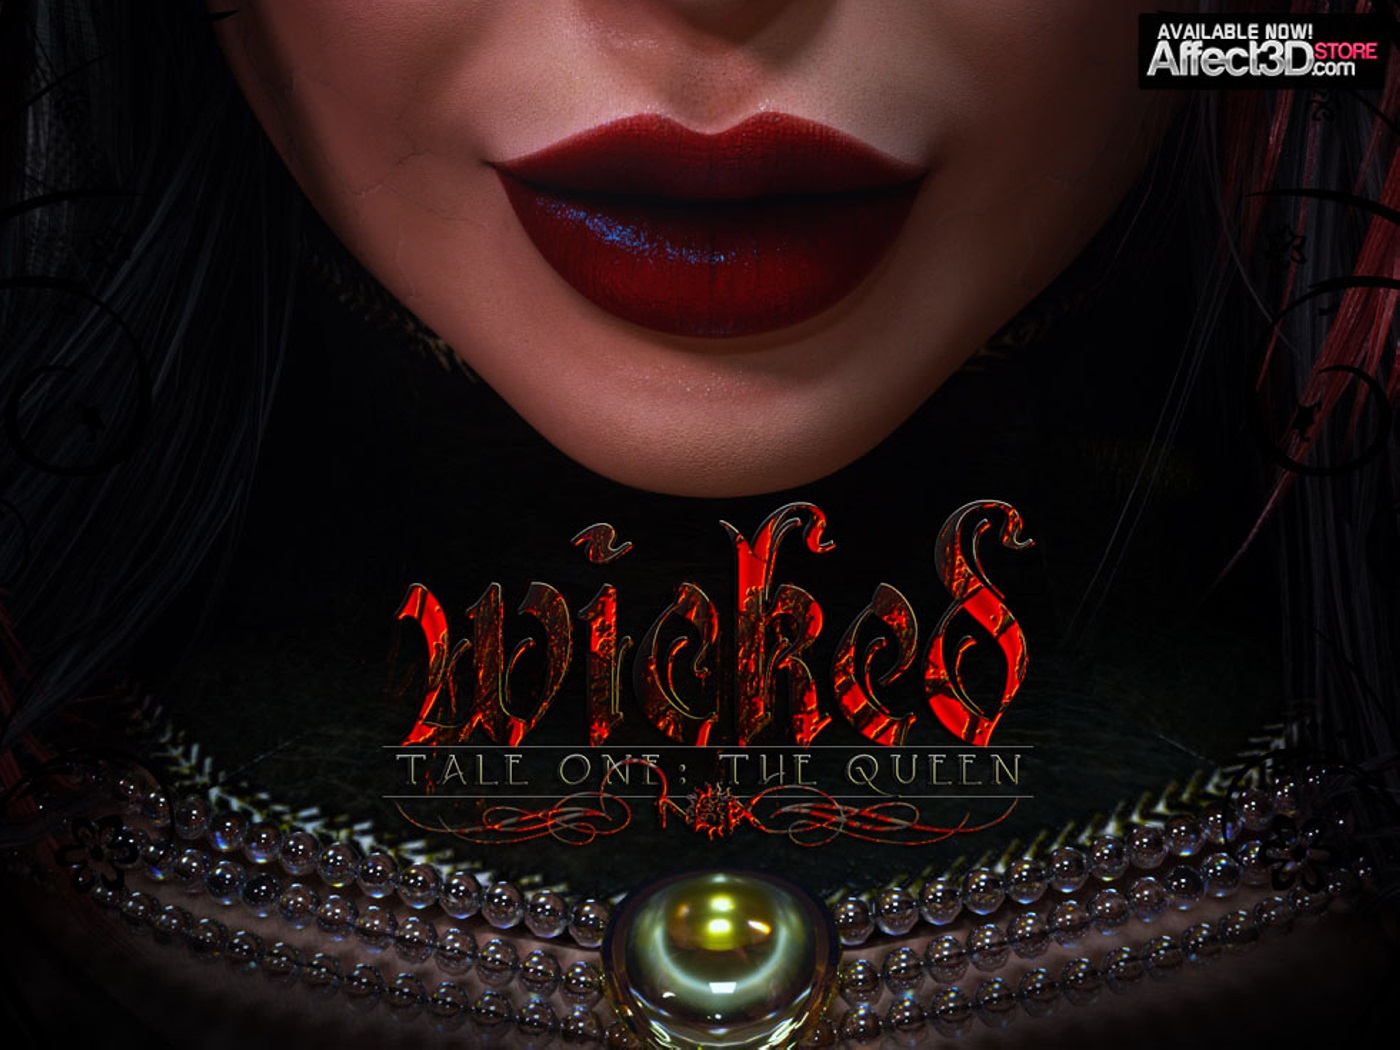 Nox Wicked- Tale One – The Queen image 1